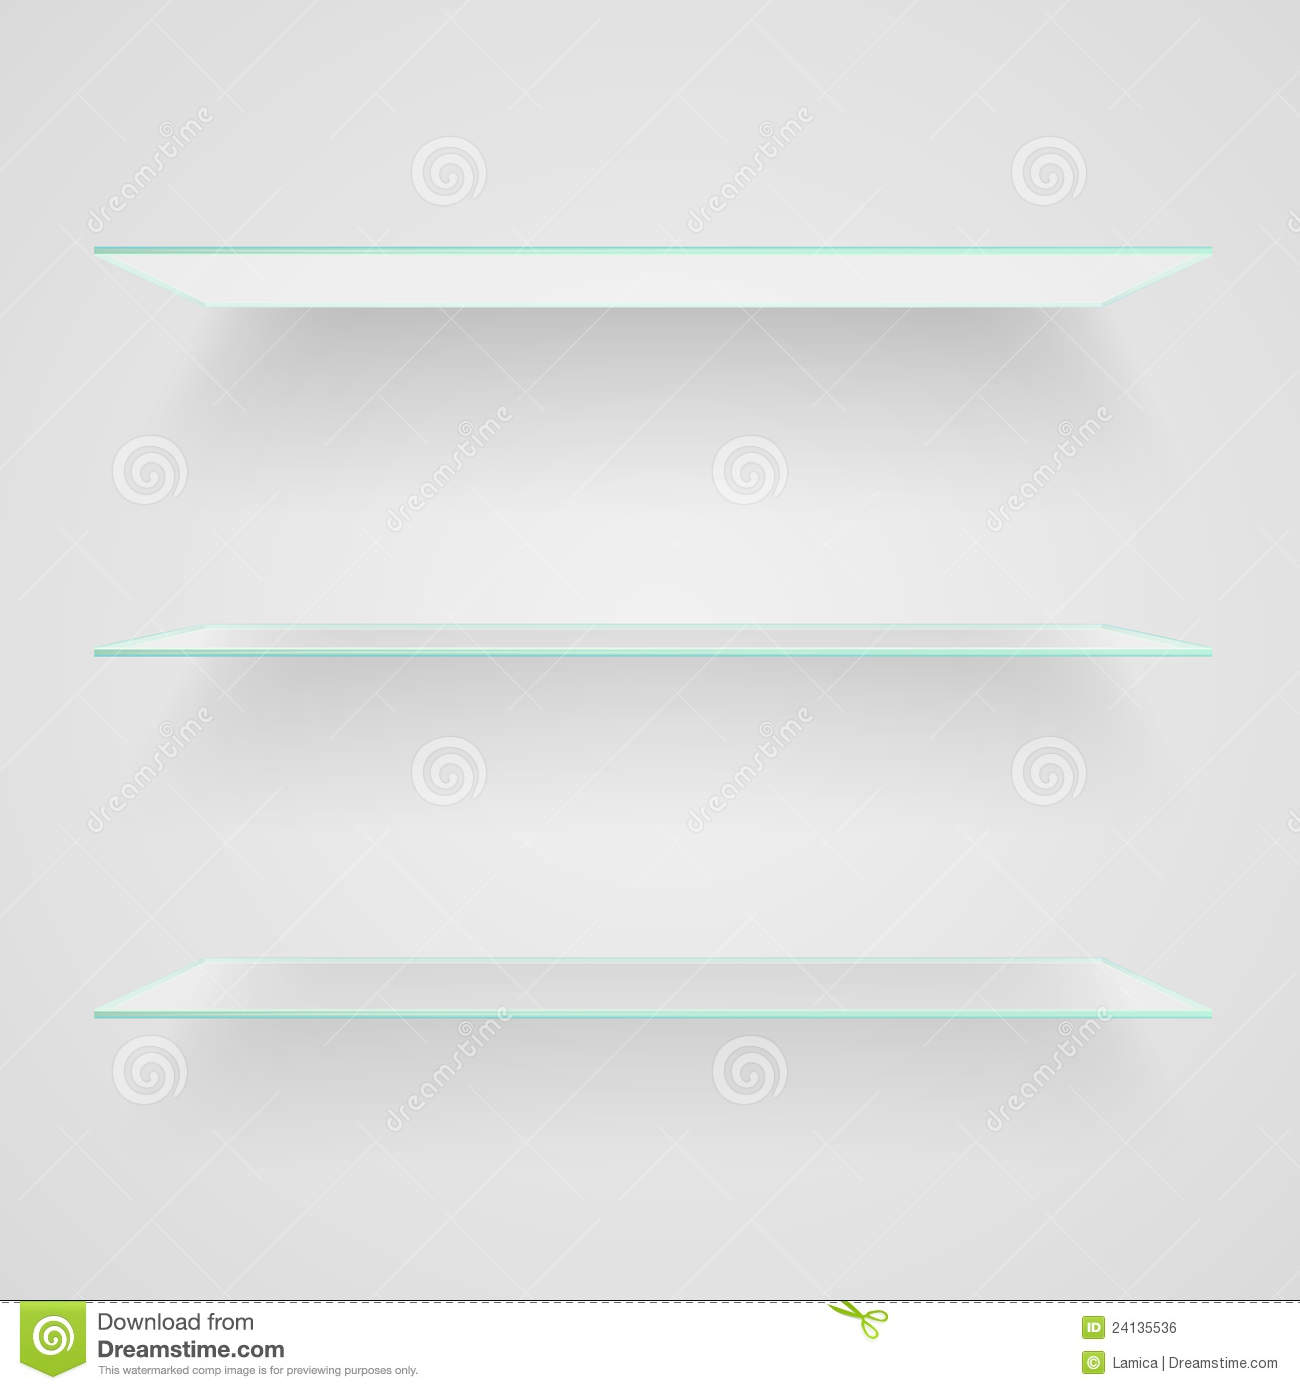 Glass shelves on light grey background vector eps10 illustration